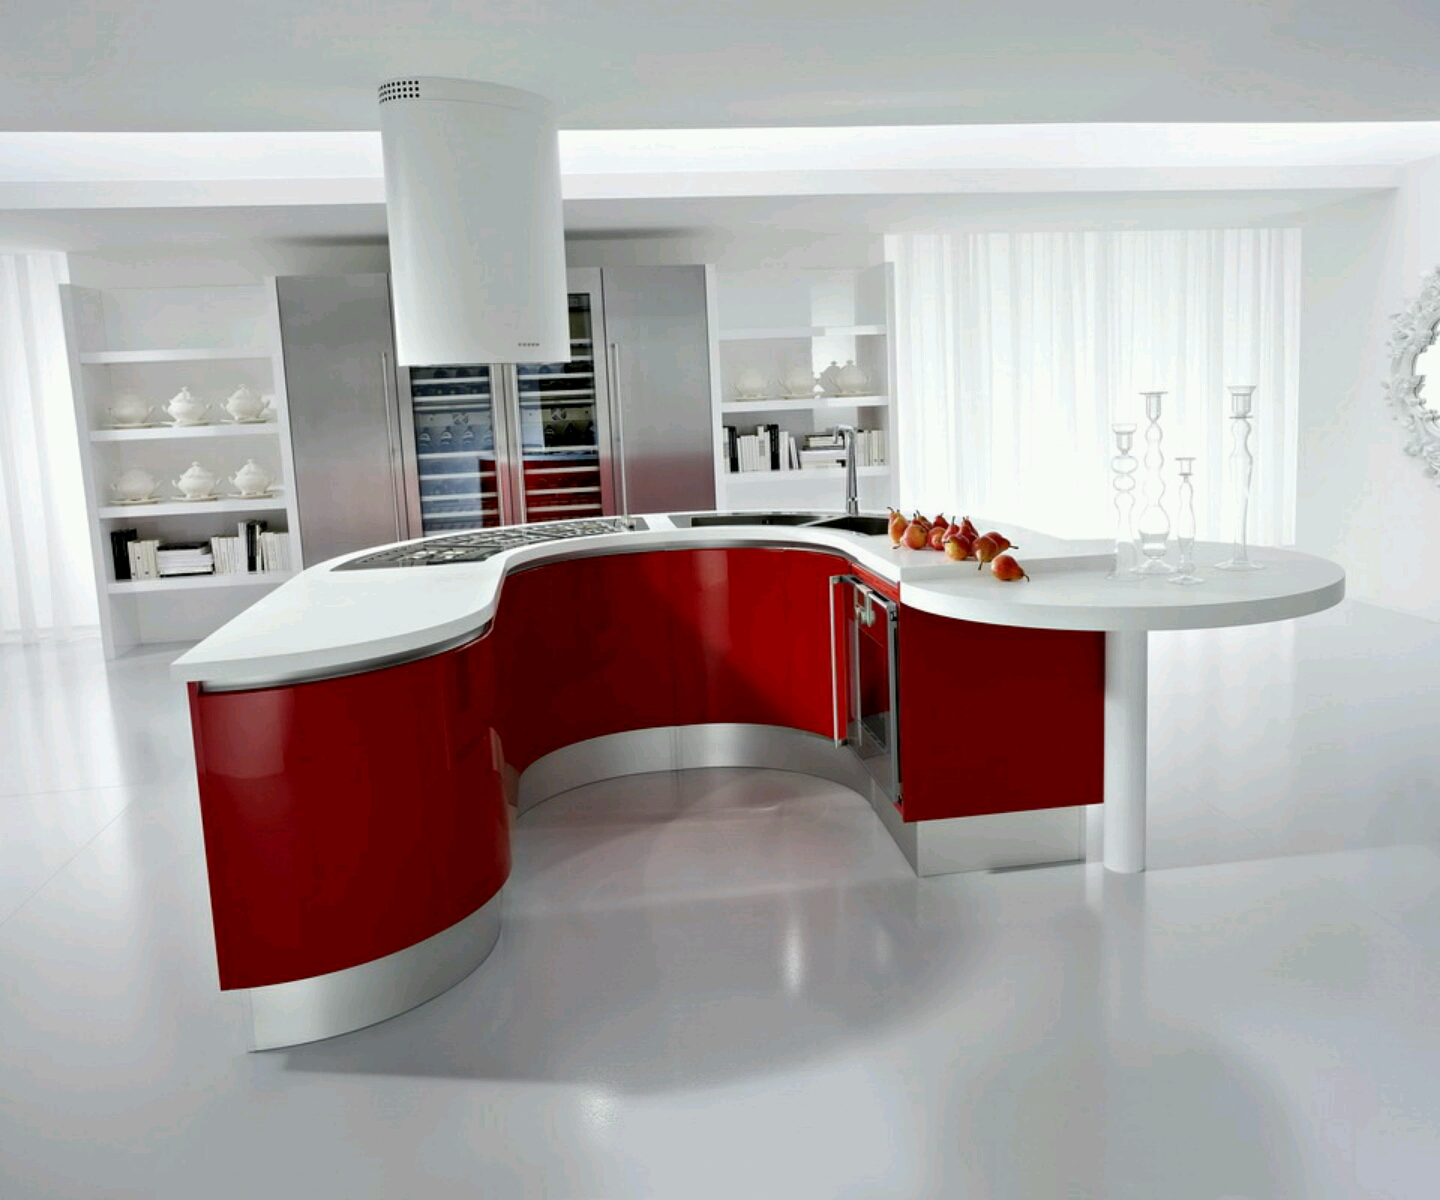 Modern kitchen cabinets designs ideas furniture gallery for Modern kitchen plan